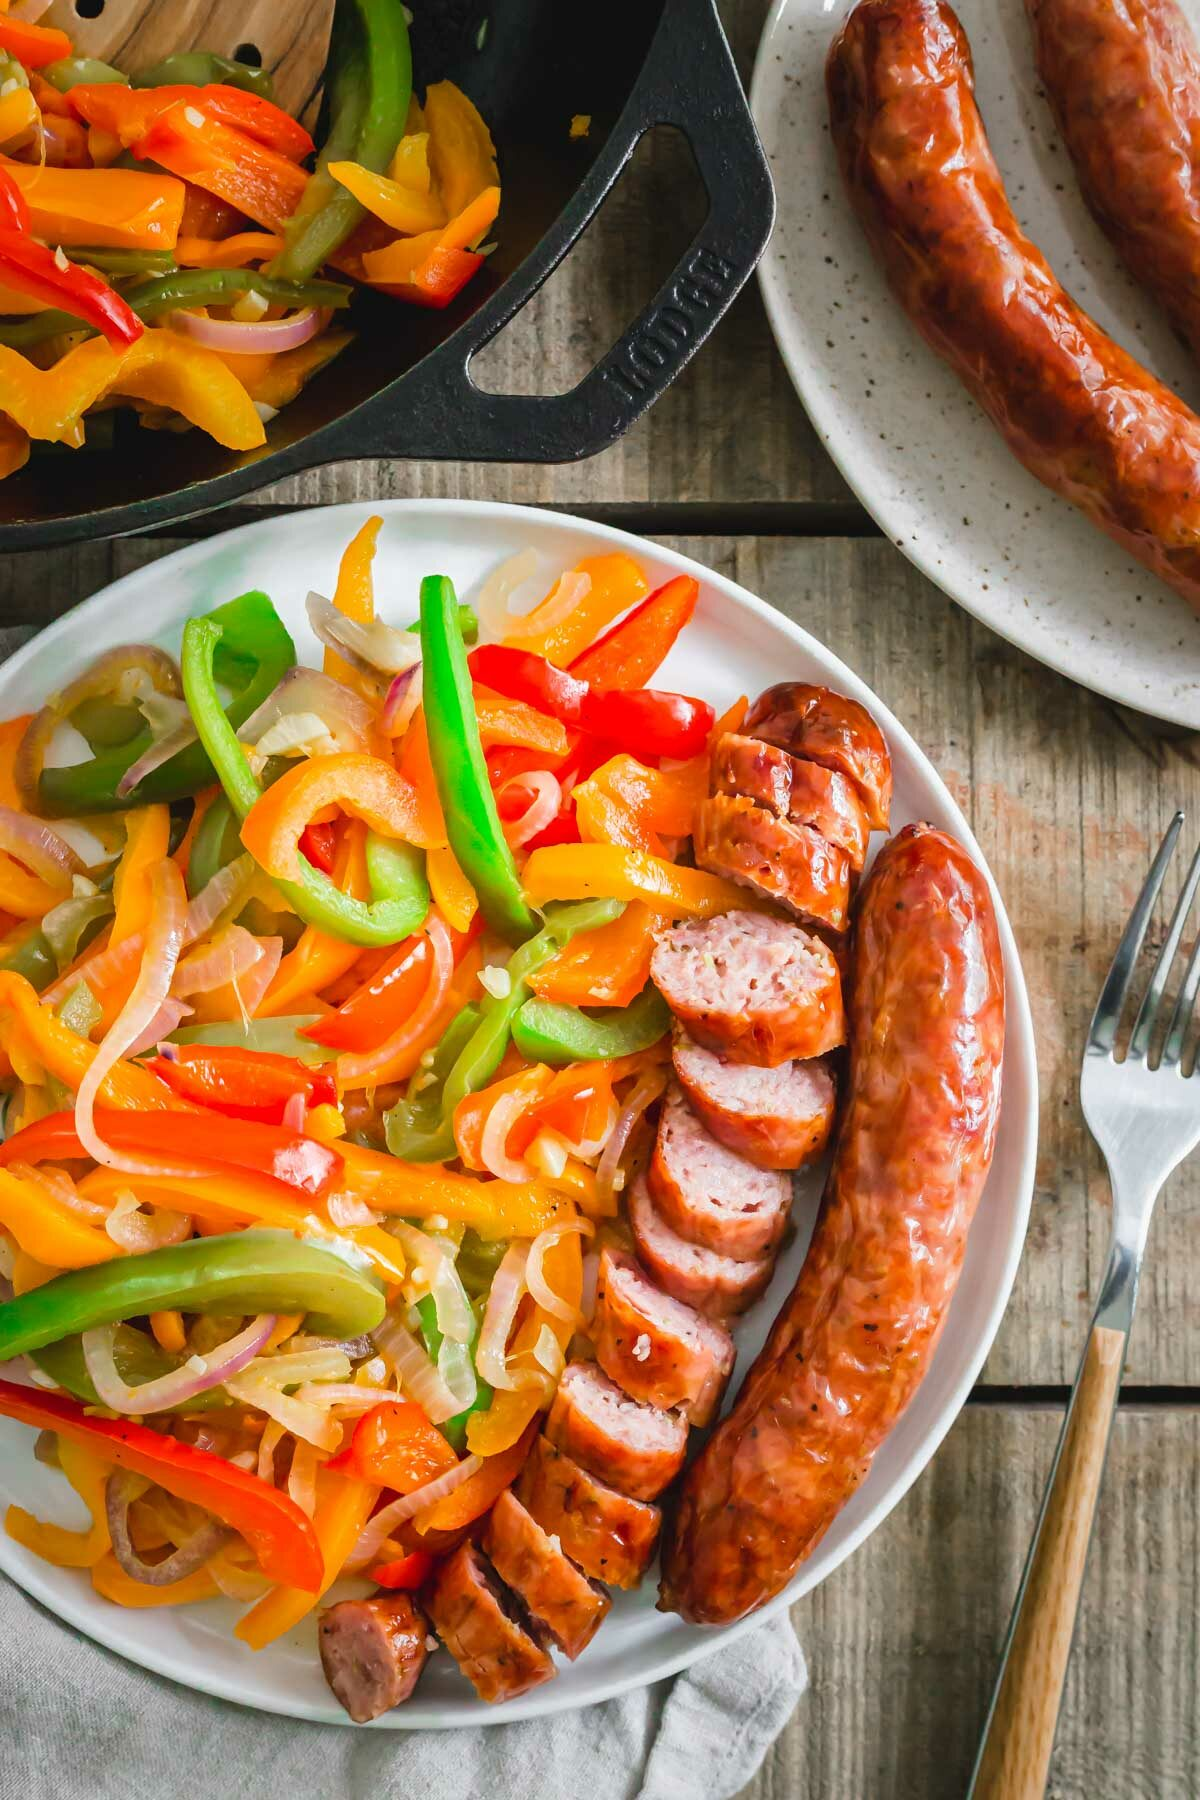 Sausage cooked in the air fryer served with peppers, onions and garlic.